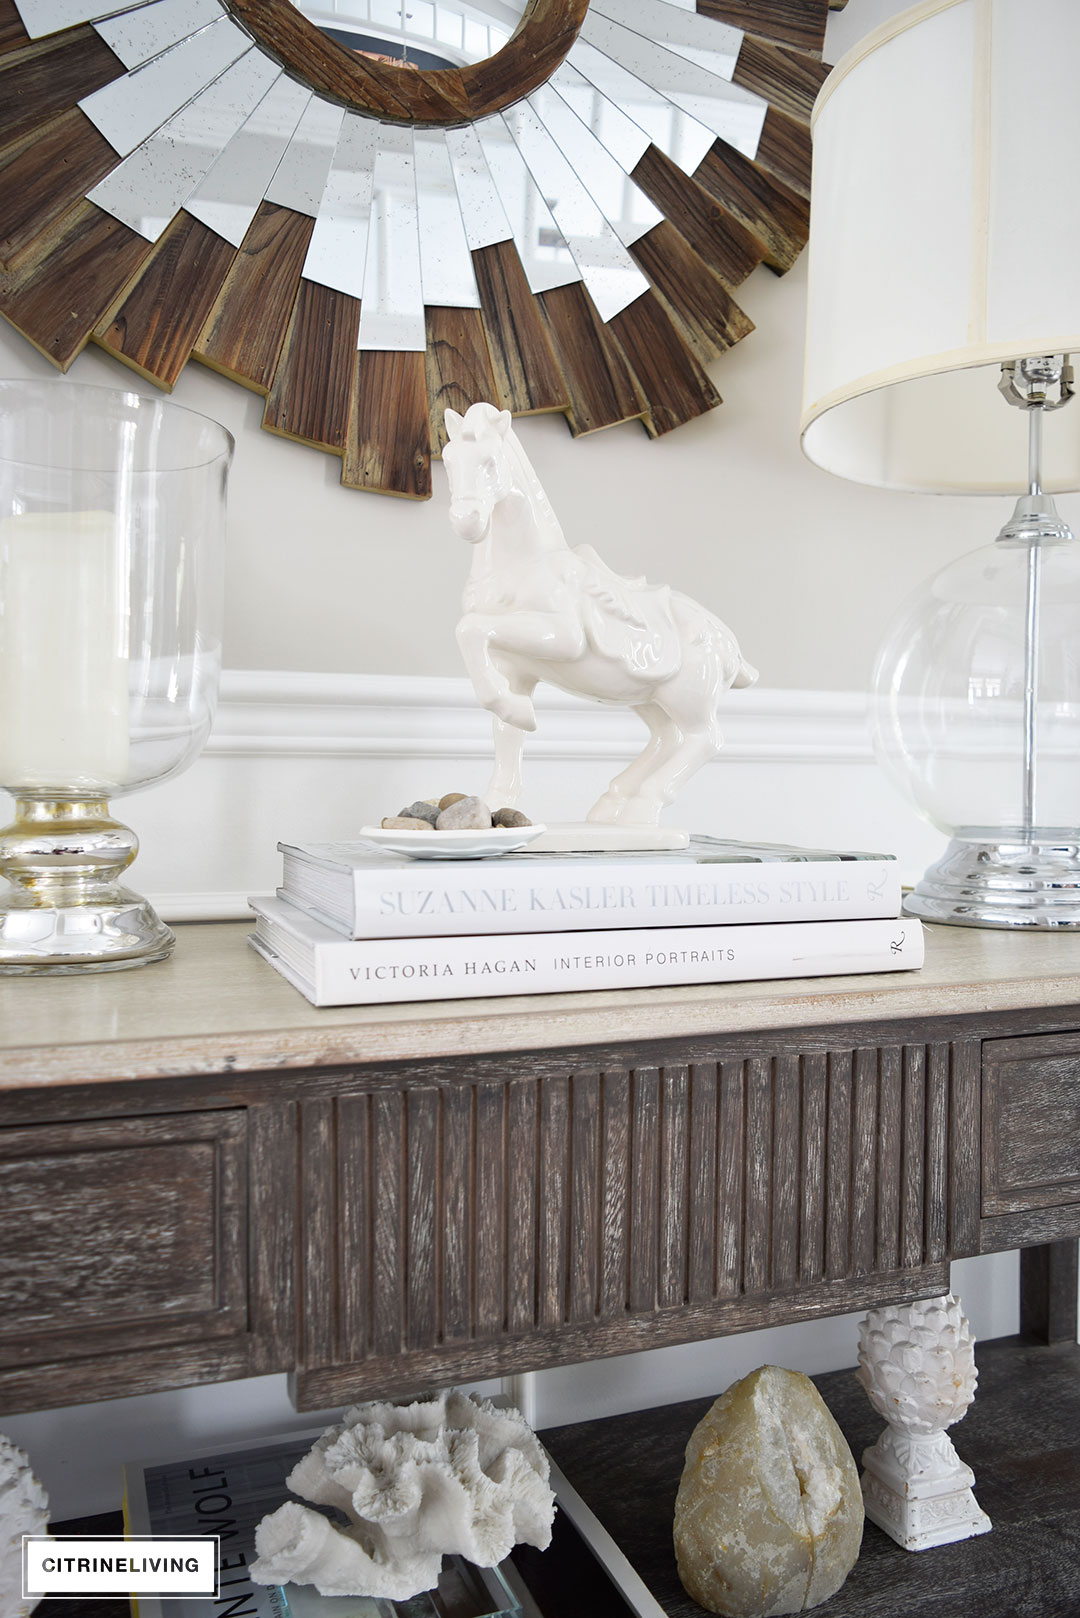 ONE CONSOLE TABLE FOUR DIFFERENT WAYS